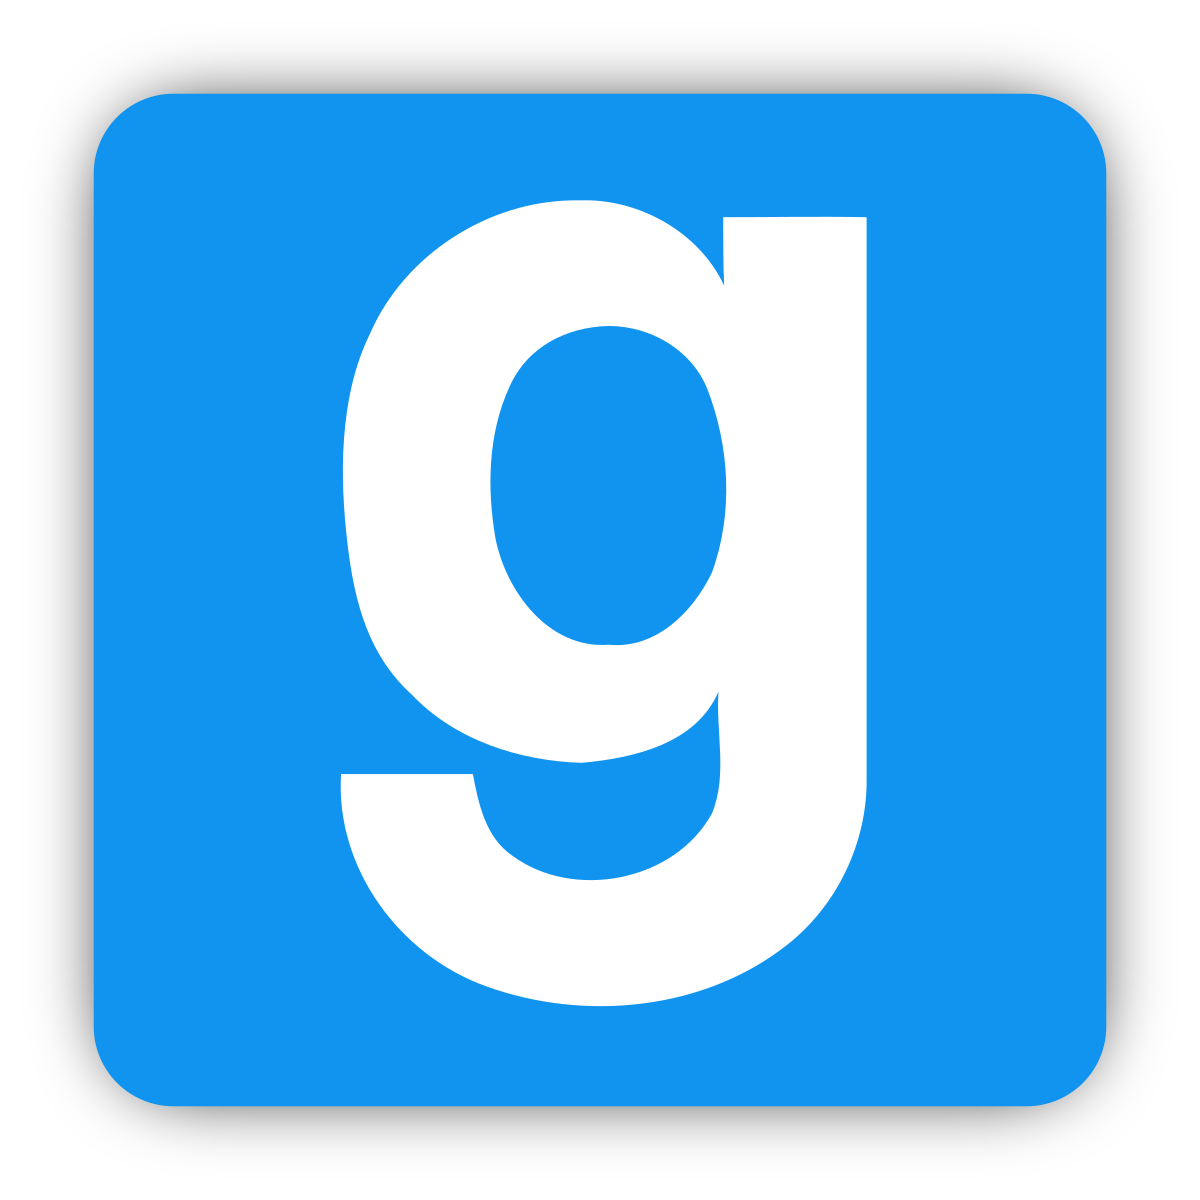 Gmod character png. Garry s mod wikipedia